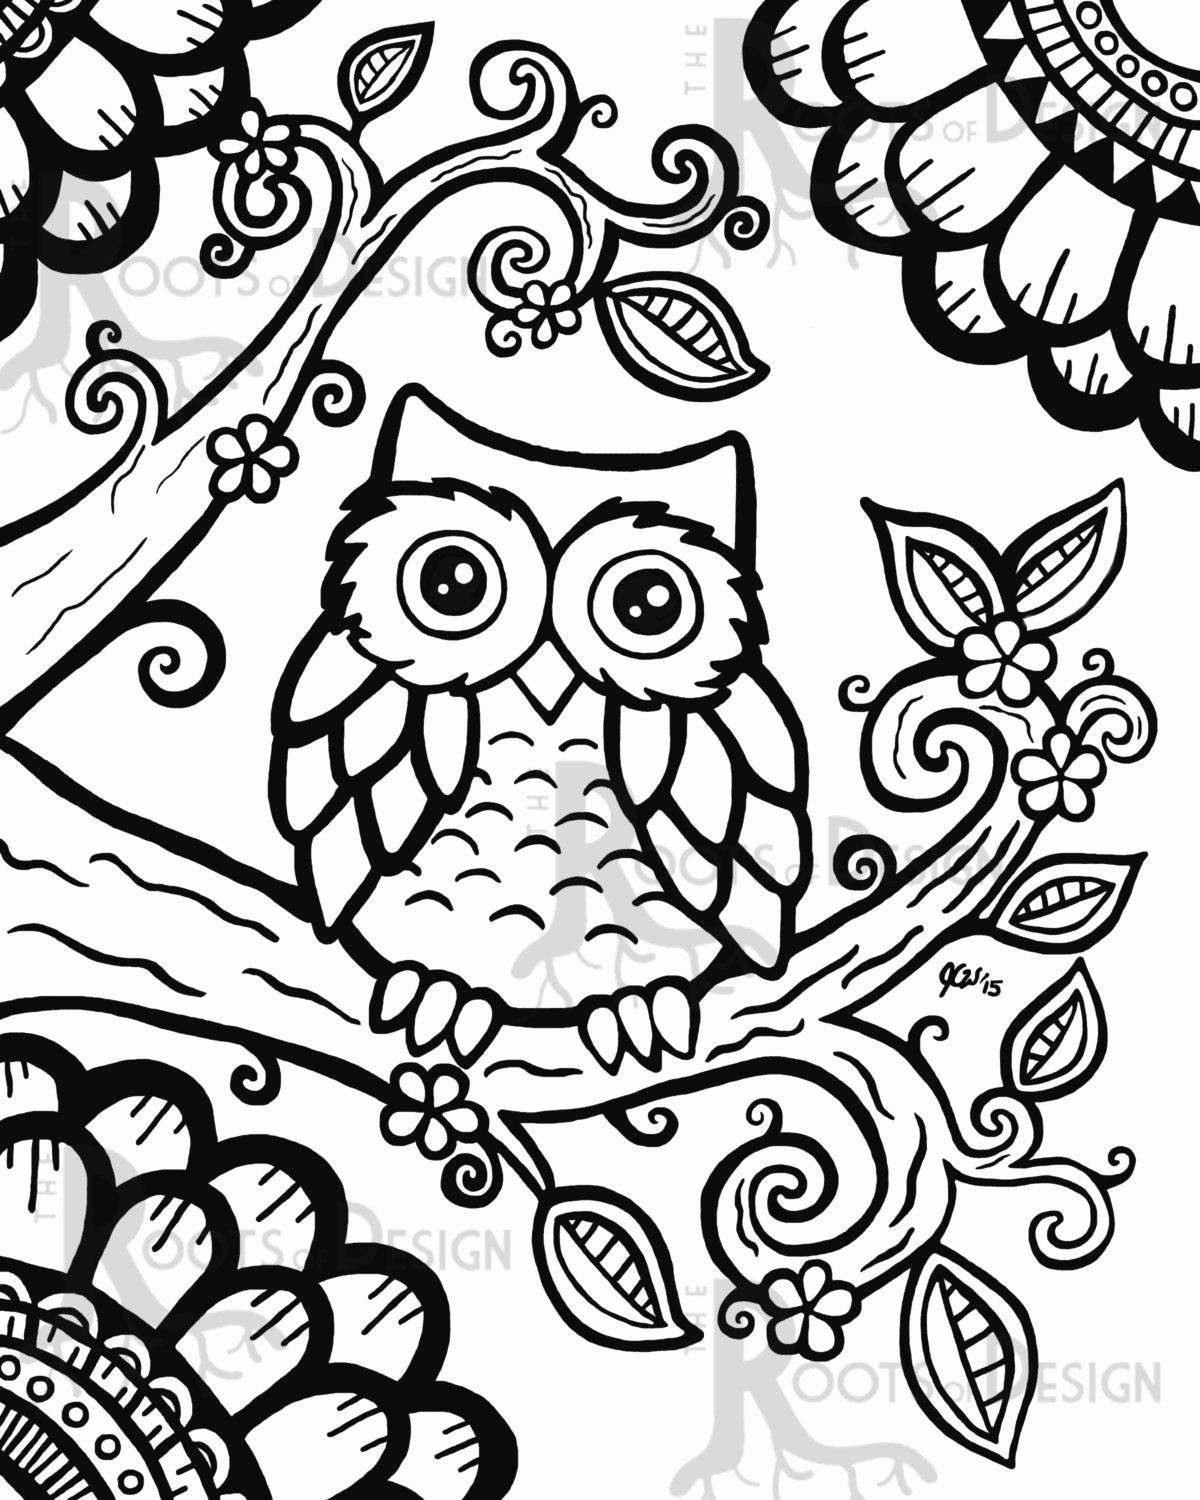 Cute Coloring Books New Instant Download Coloring Page Cute Owl Zentangle By Rootsdesign In 2020 Owl Coloring Pages Cute Coloring Pages Owls Drawing